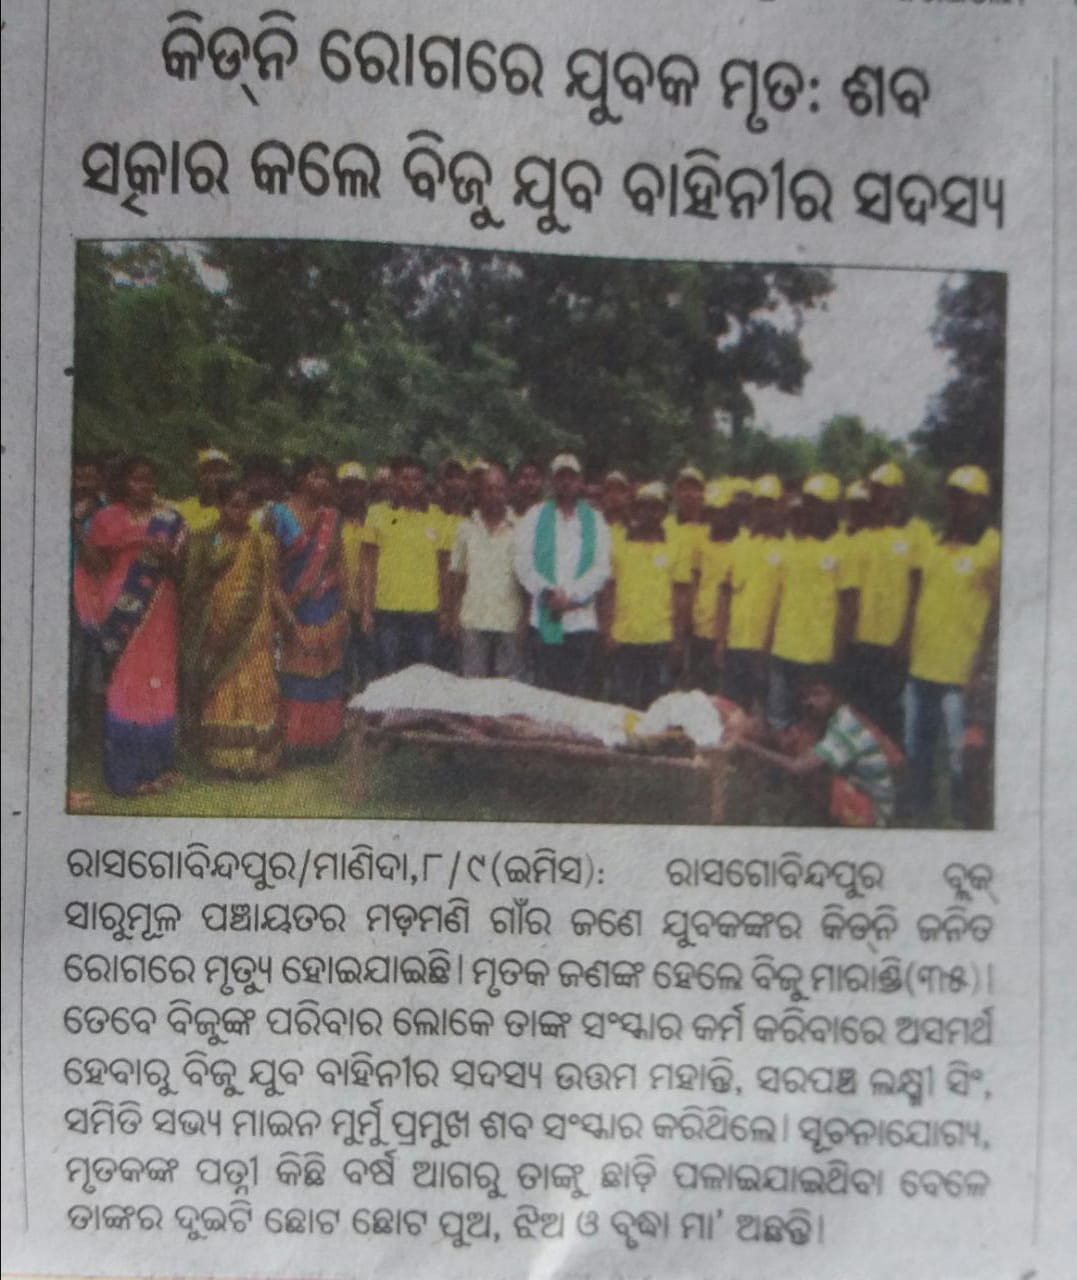 Cremation of a poor person's dead body by BYV Members